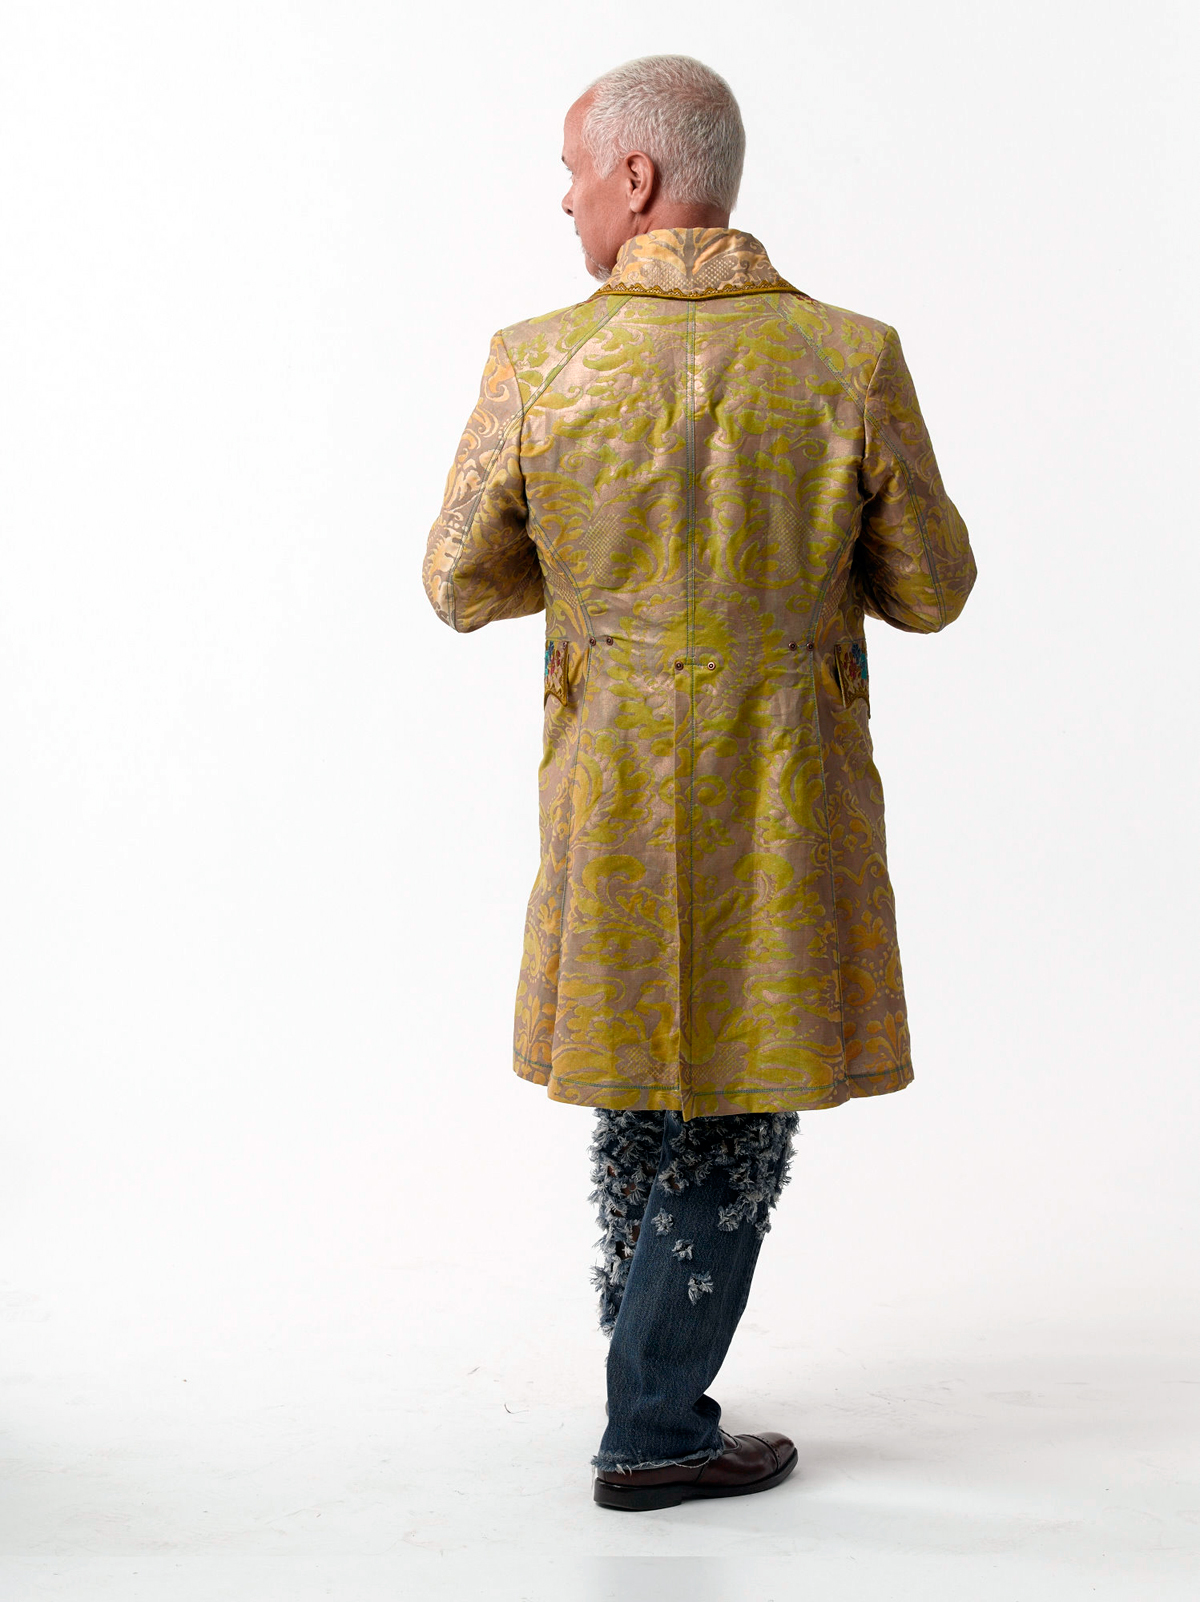 Finished Fortuny frock coat by Kenneth D. King